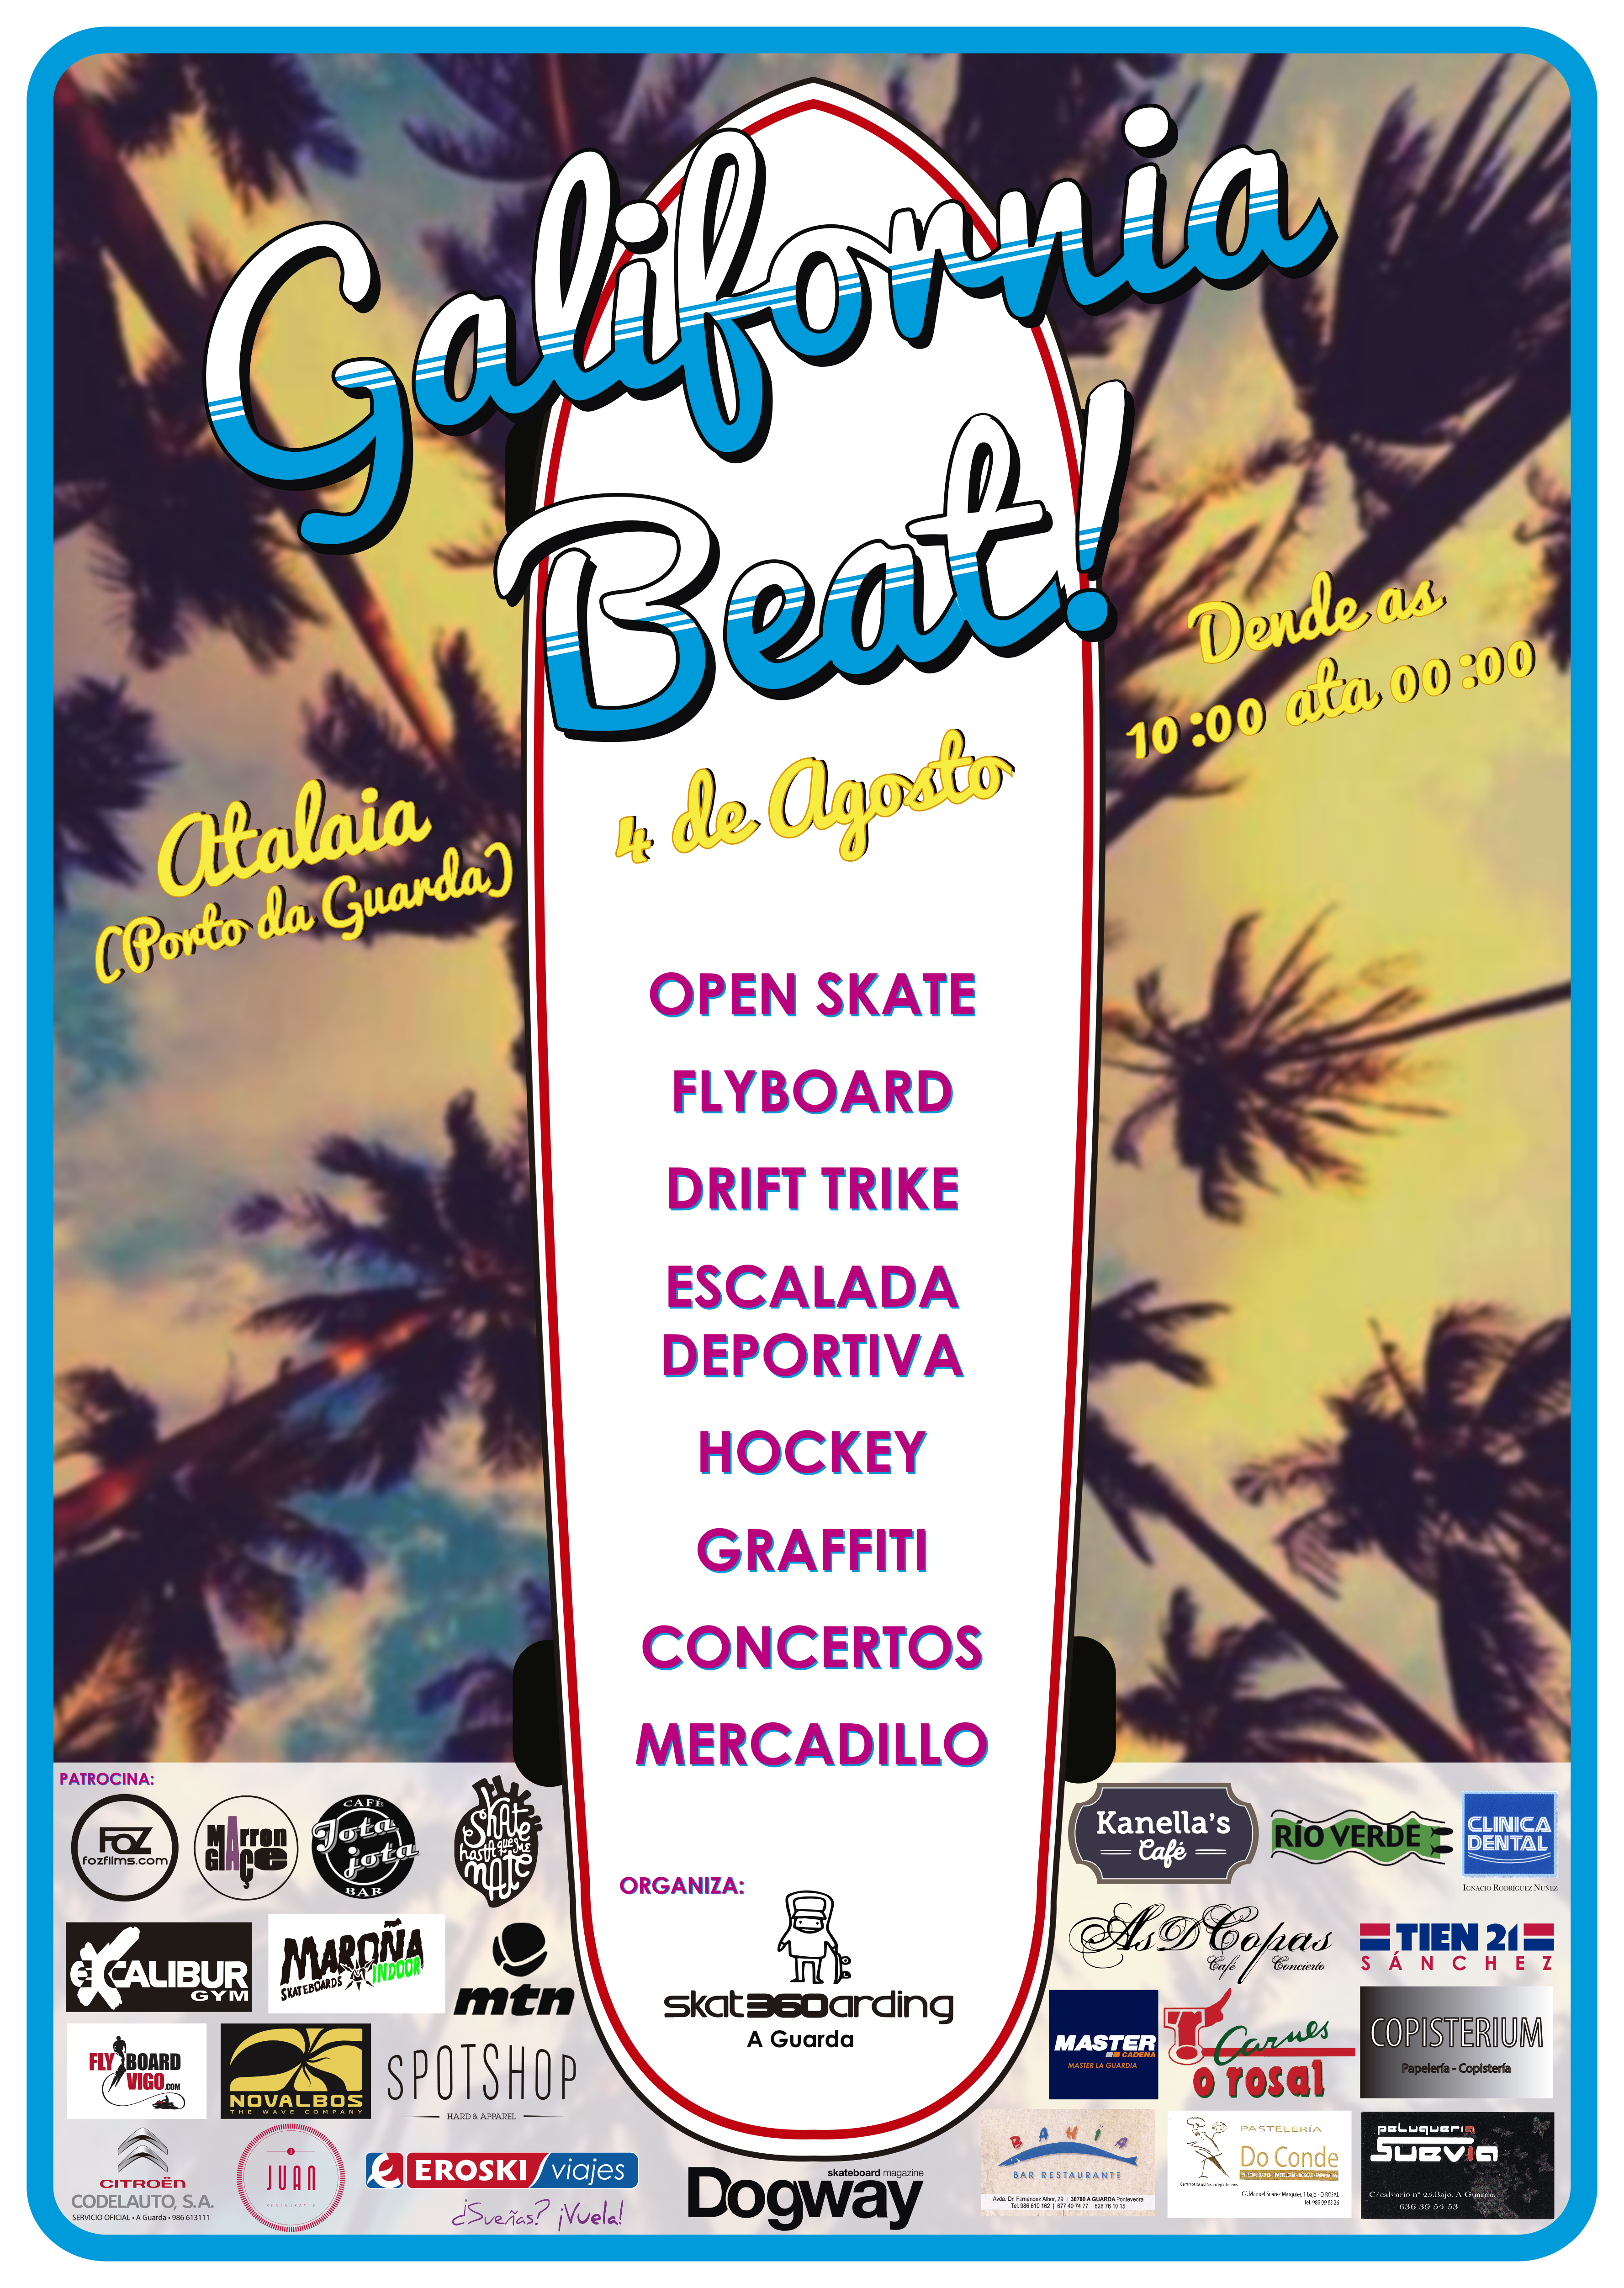 Galifornia Beat en A Guarda